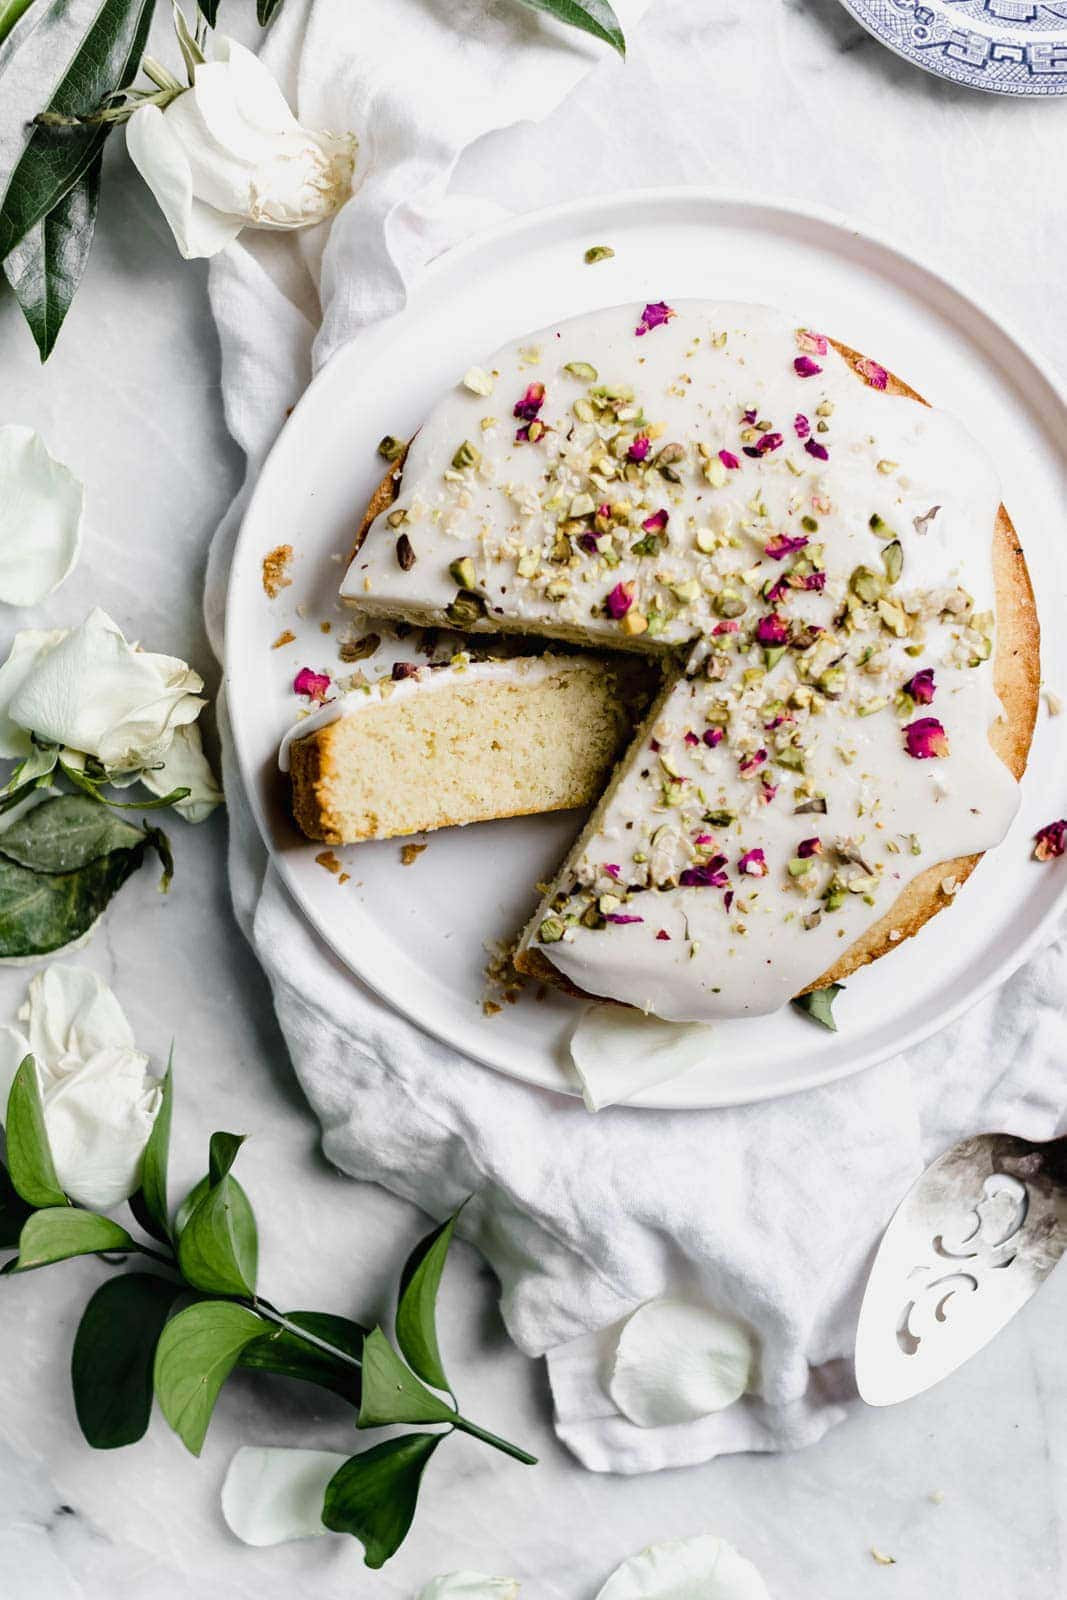 rose cake topped with glaze and pistachios